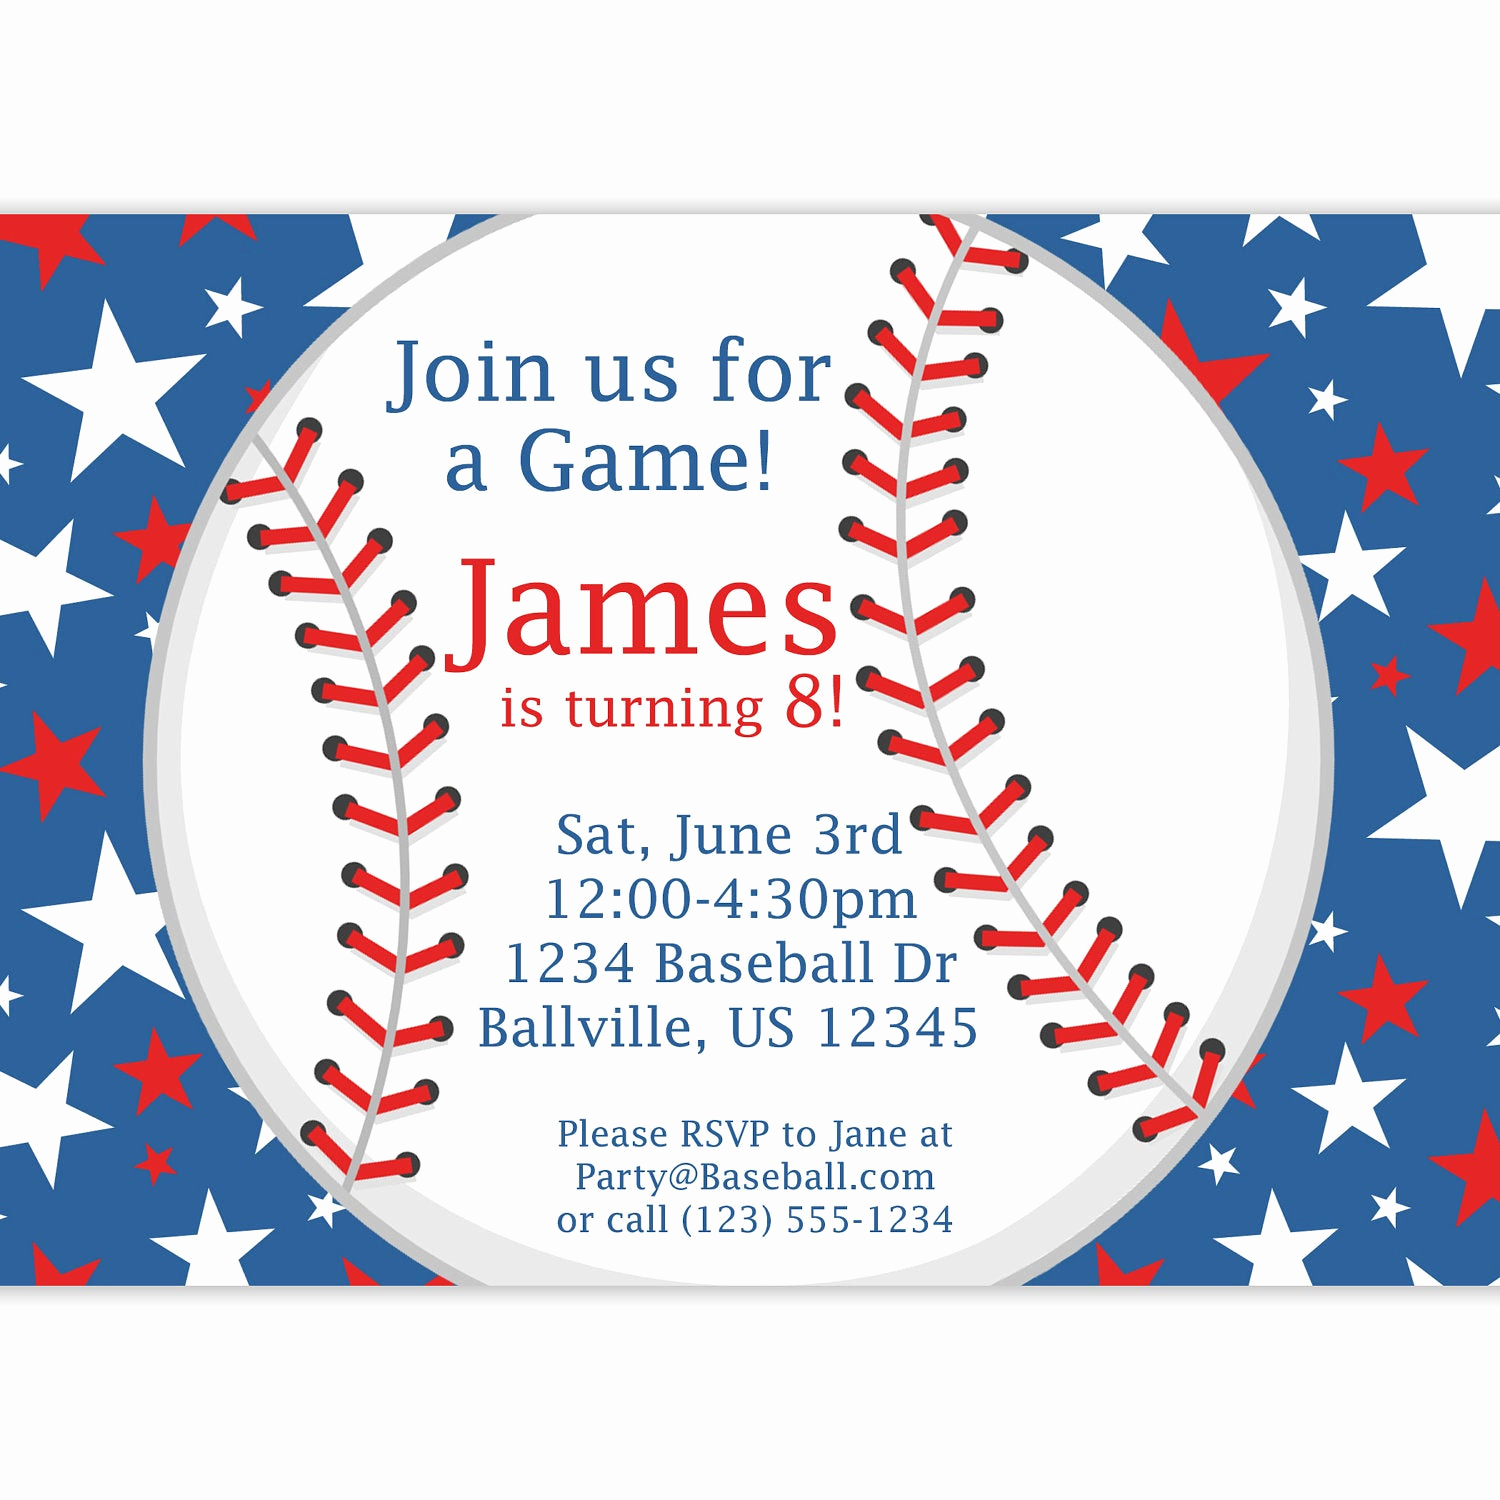 Free Baseball Invitation Template Best Of Baseball Party Invitation Red White and Blue Star Baseball